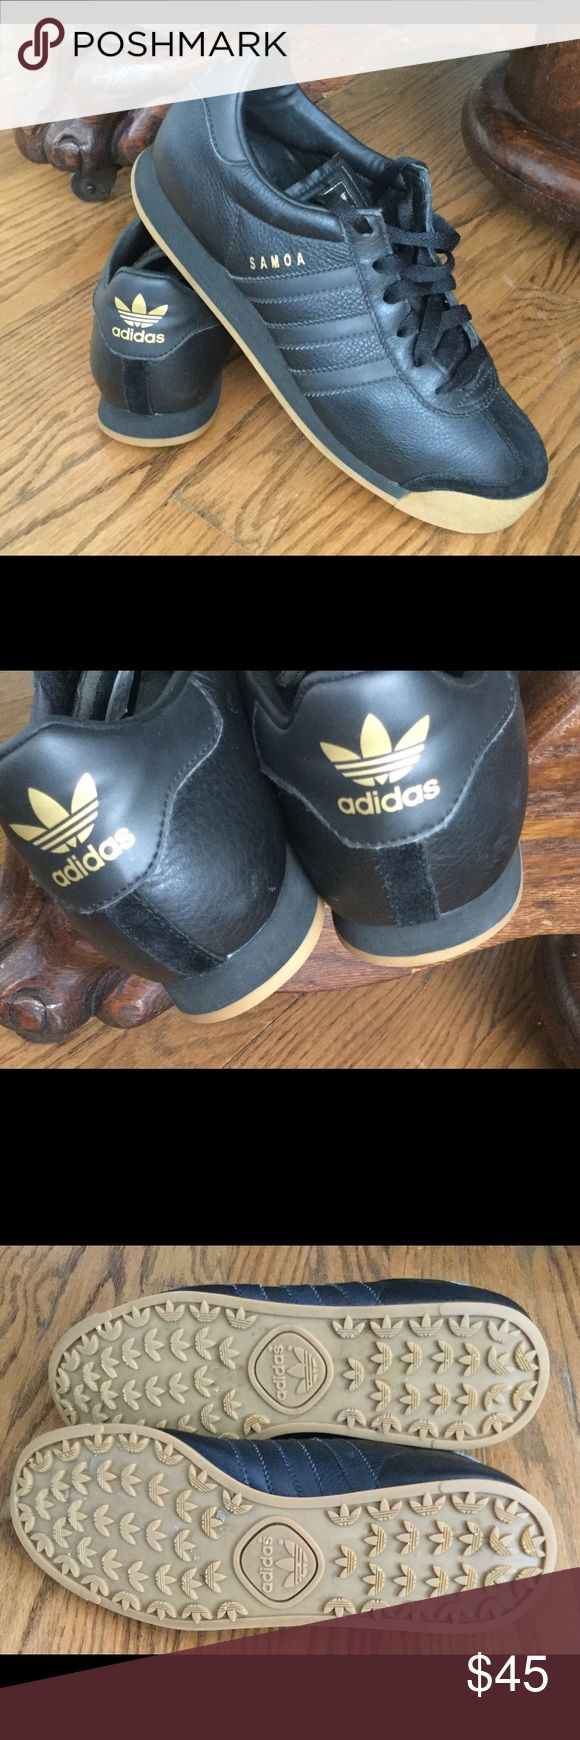 Adidas Women's Samoa Black/Gold classic and casual silhouette. Lightly padded tongue for comfort. 3 signature stripes. Snug fit, lace up closure. Excellent walking shoe. Adidas Samoa Shoes Athletic Shoes